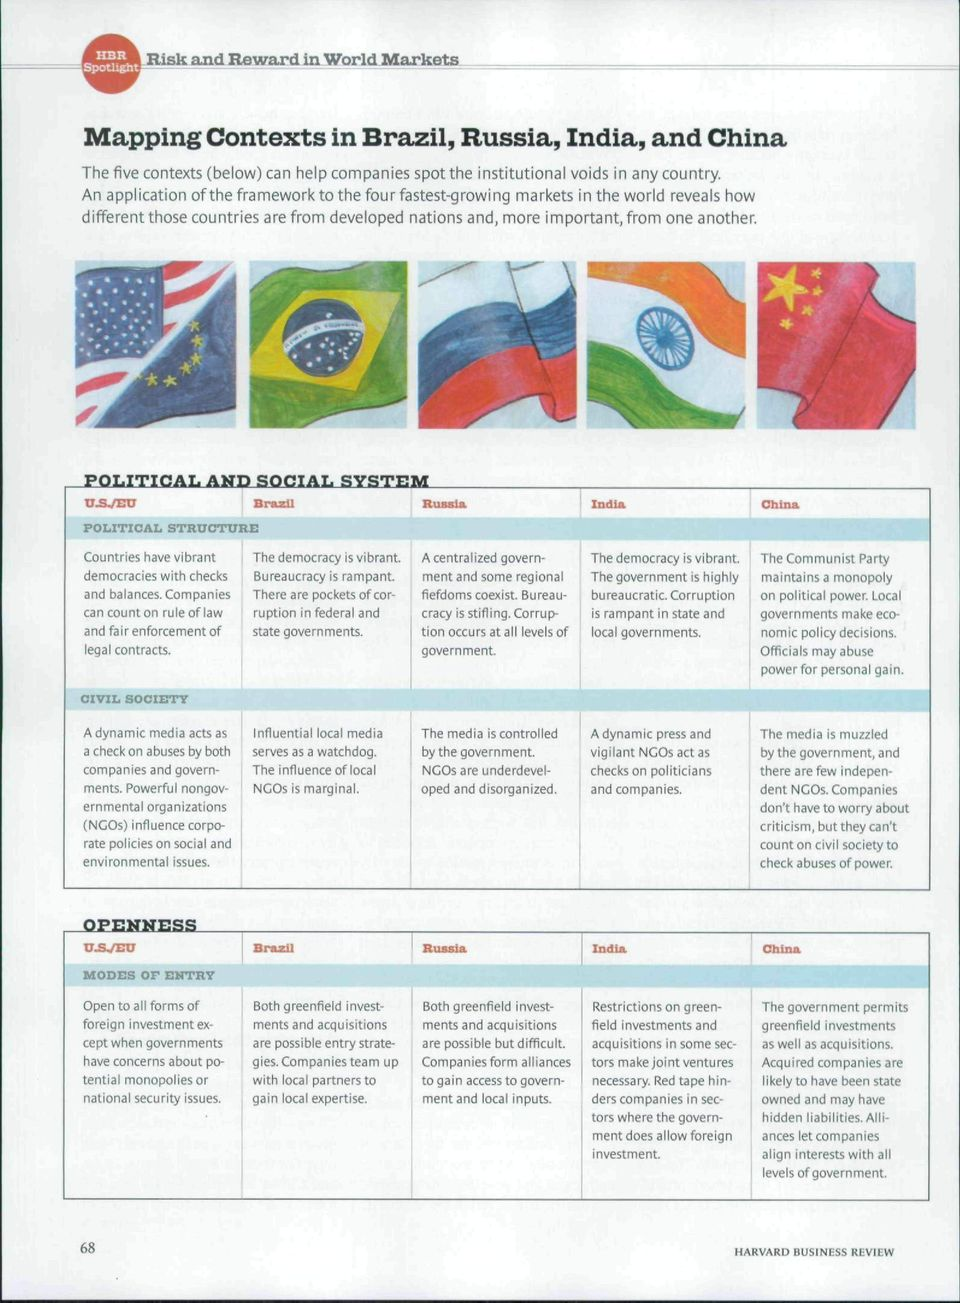 POLITICAL AK:3 SOCIAL SYSTEM U.SVEU Brazil Russia POLITICAL STRUCTURE India. China Countries have vibrant democracies with checks and balances.